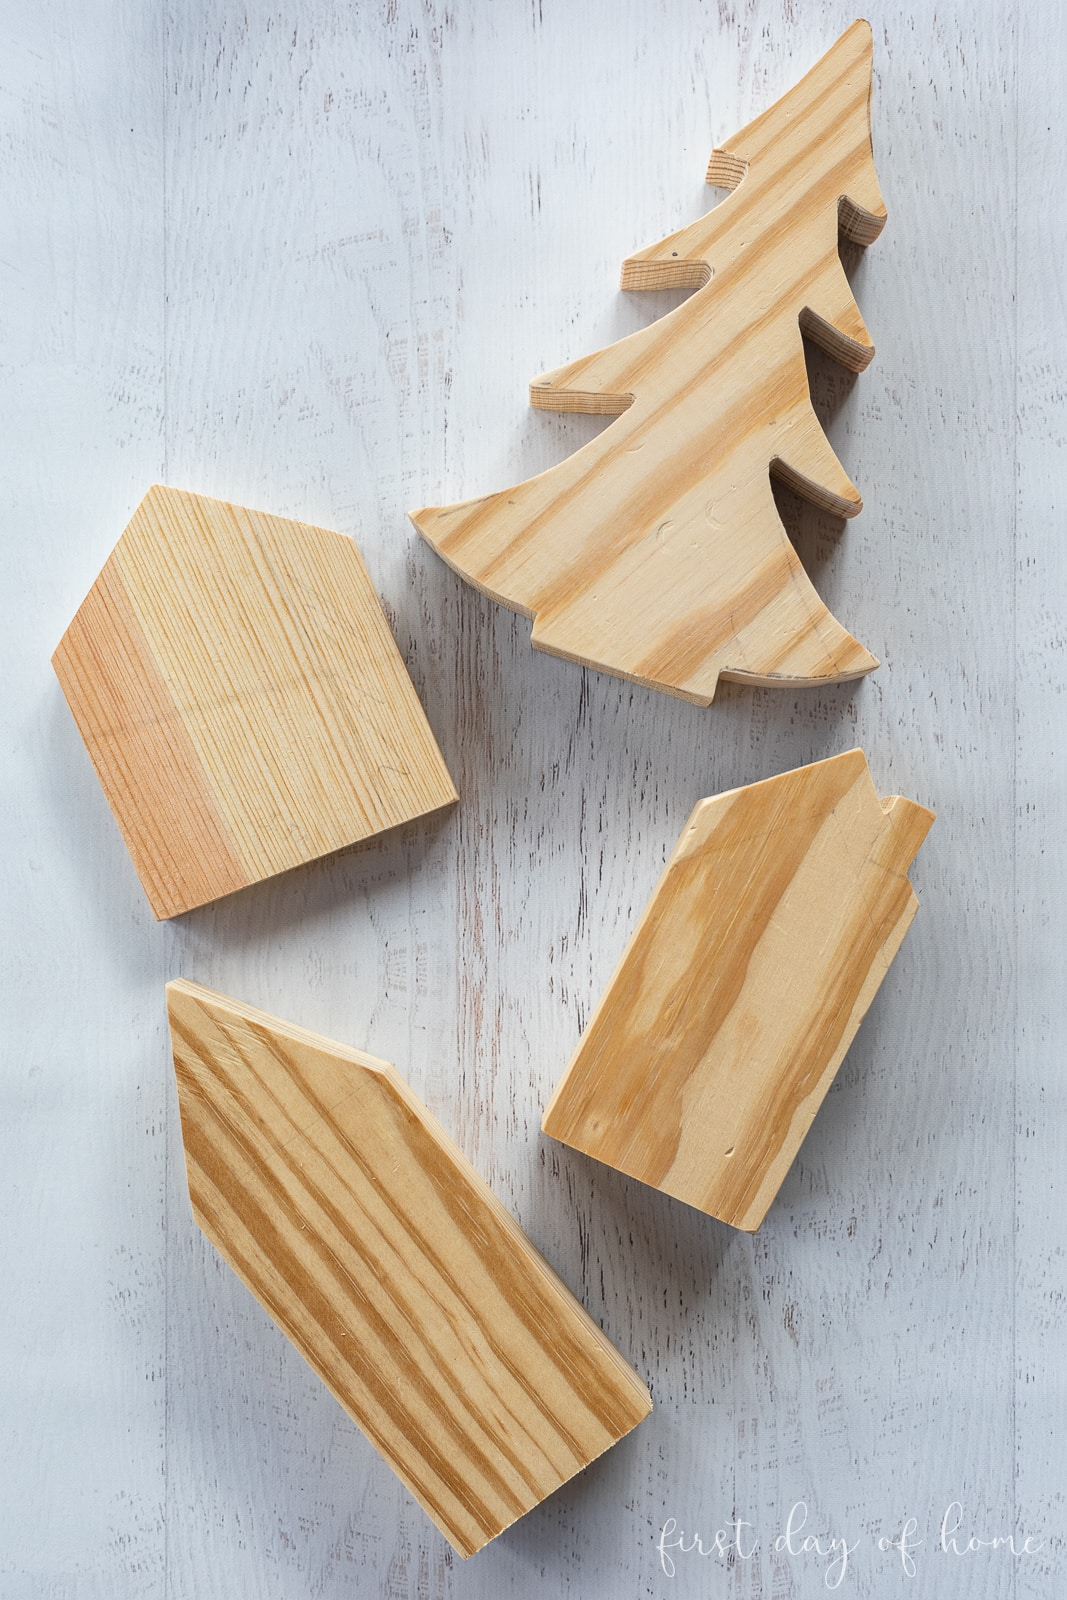 Unfinished wooden cutouts after sanding and before painting